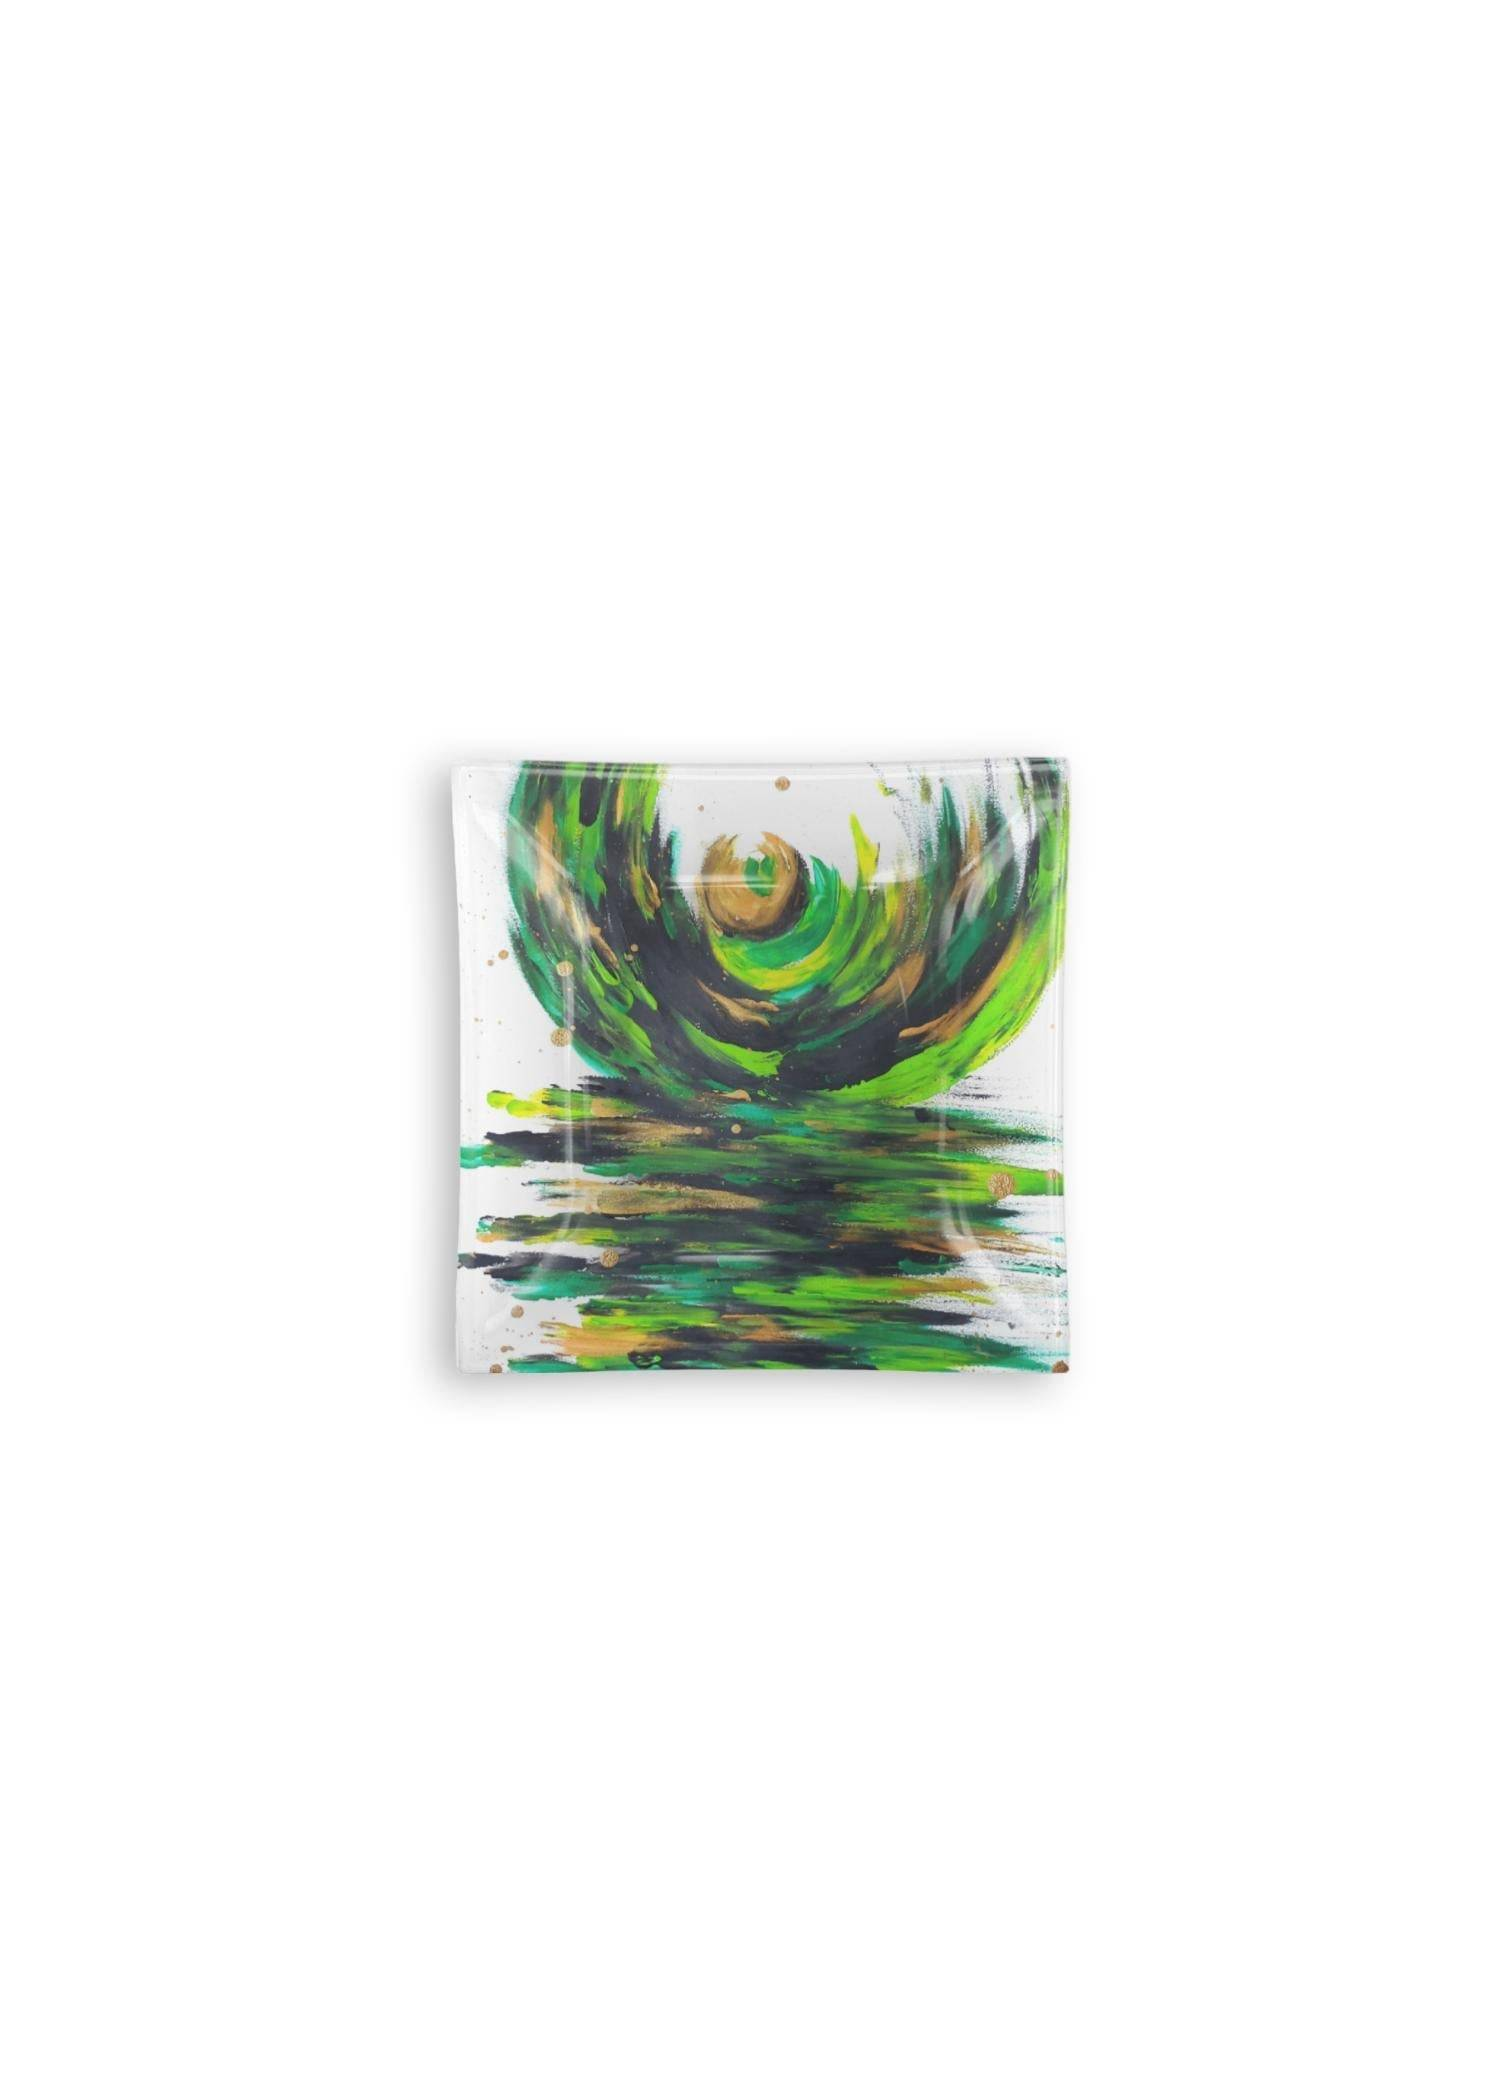 VIDA Square Glass Tray - Love Sees No Boundaries in Green/White/Yellow by VIDA Original Artist  - Size: Small